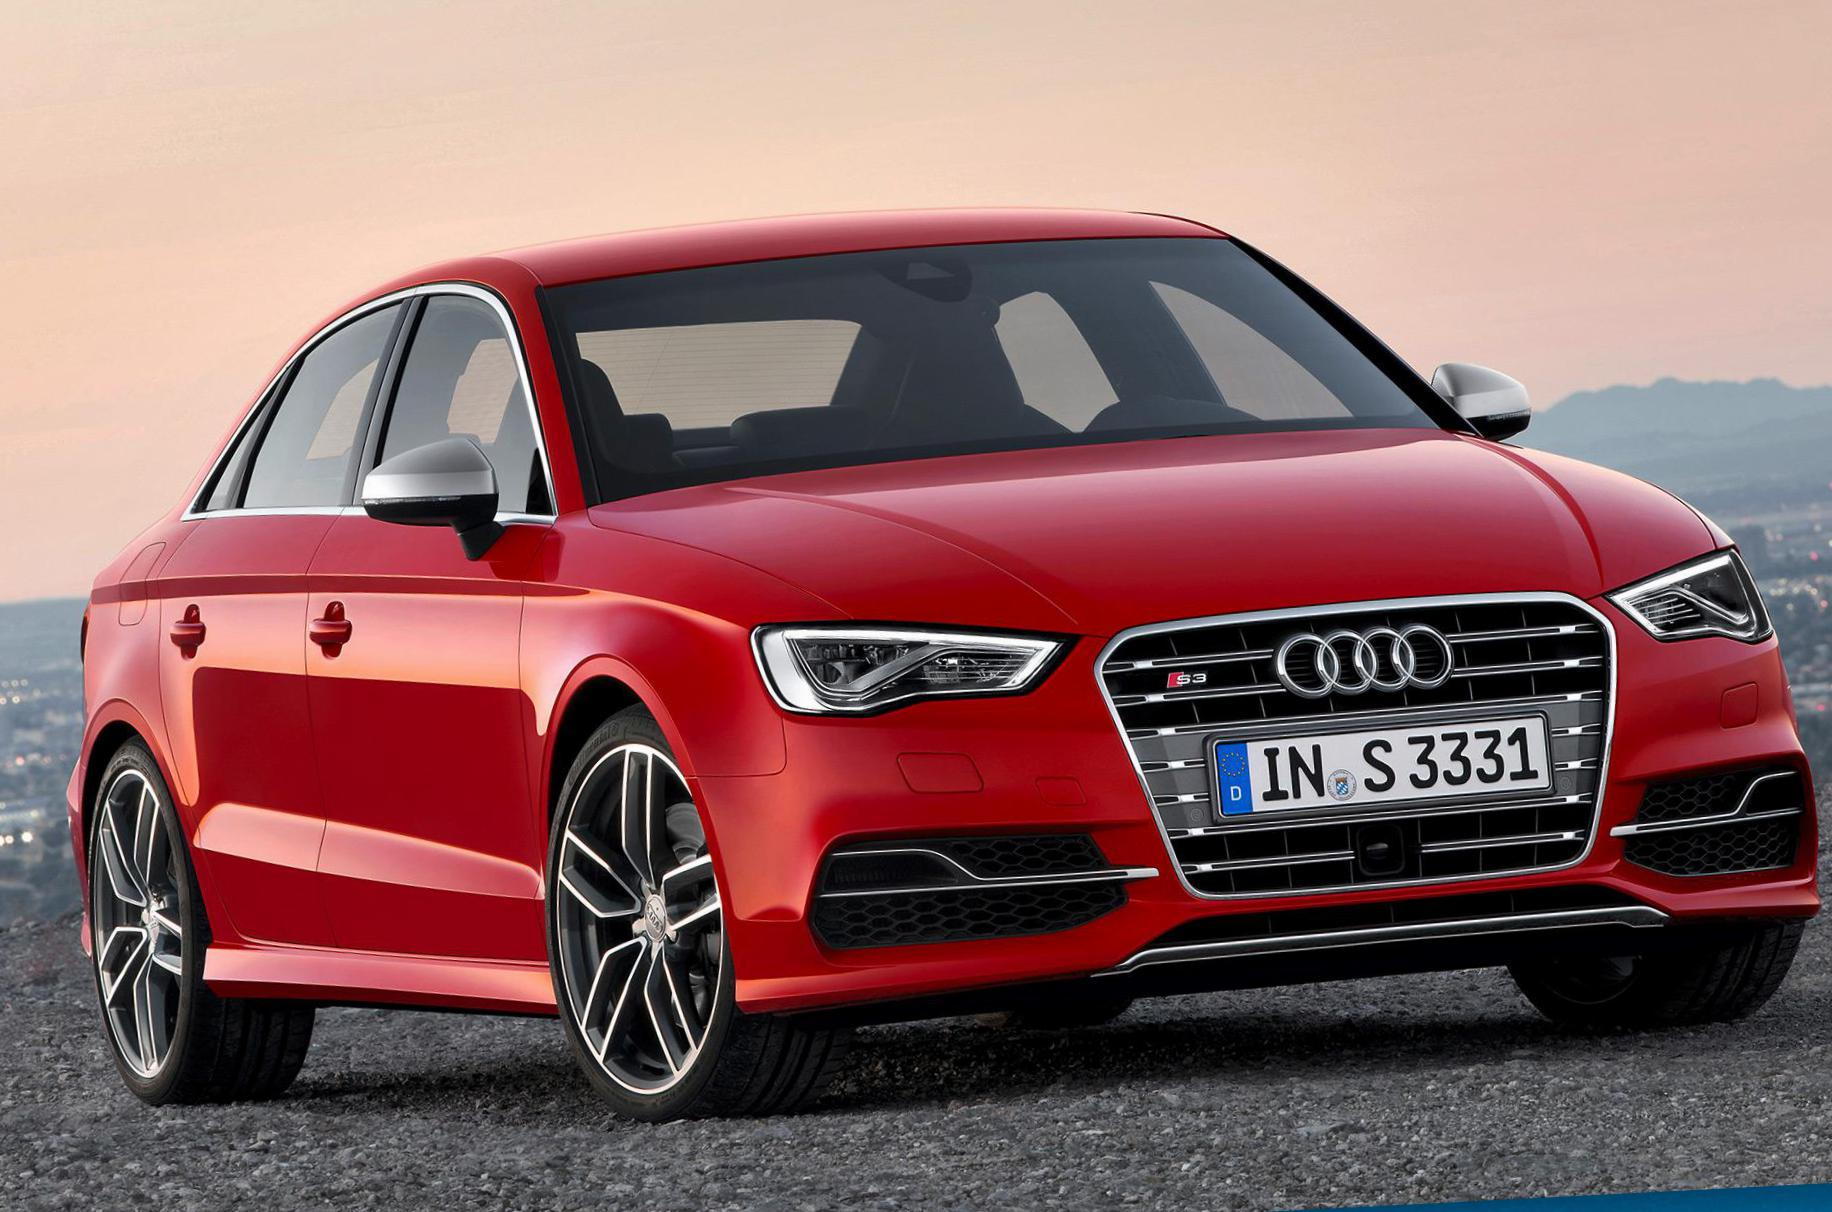 Audi A3 Sedan Specifications 2012